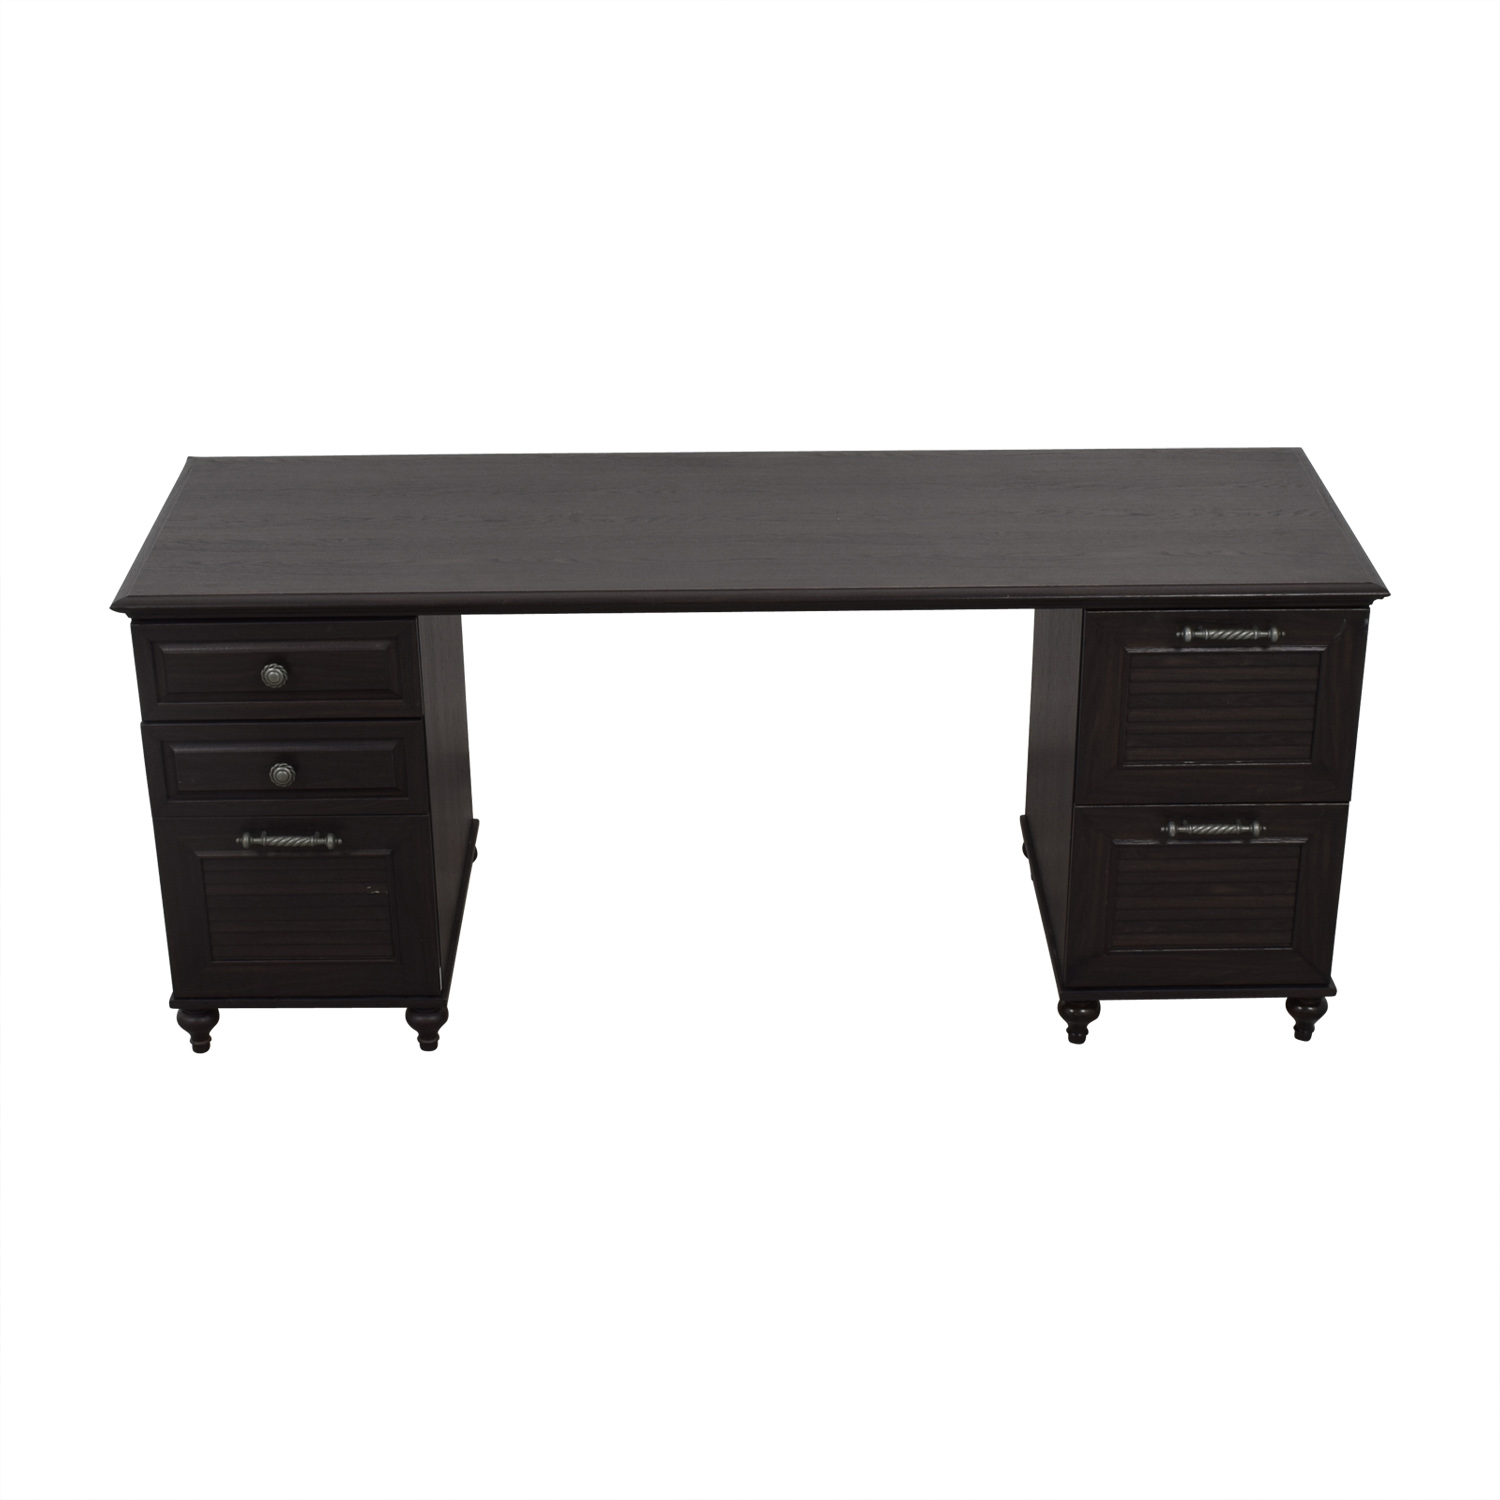 shop Cathy Ireland Black Desk with File Cabinets Cathy Ireland